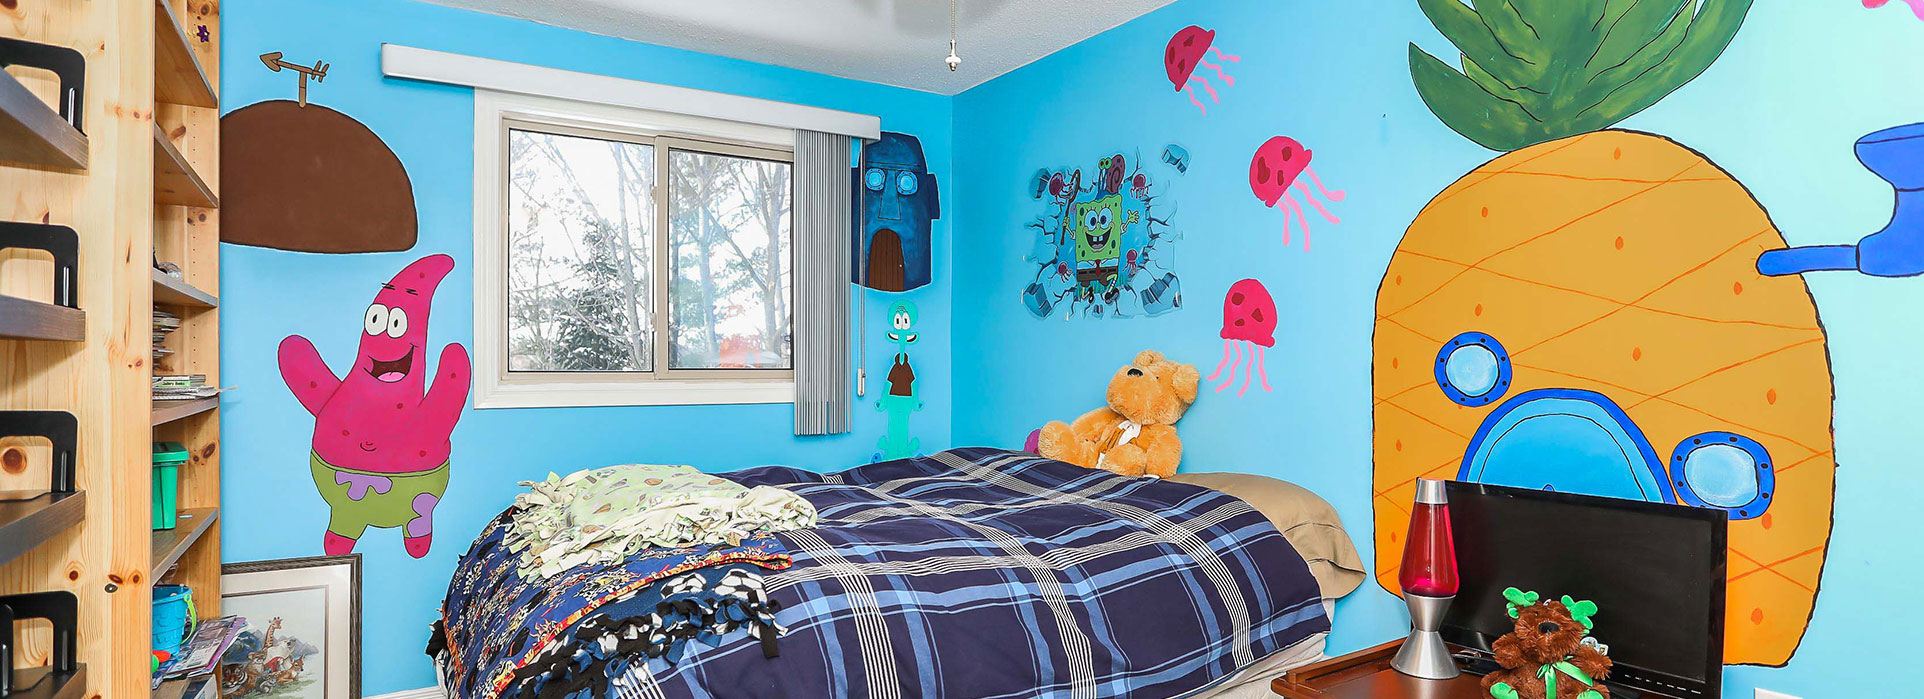 6 Evergreen Court - Sponge bob themed Kids room - Cripps Realty